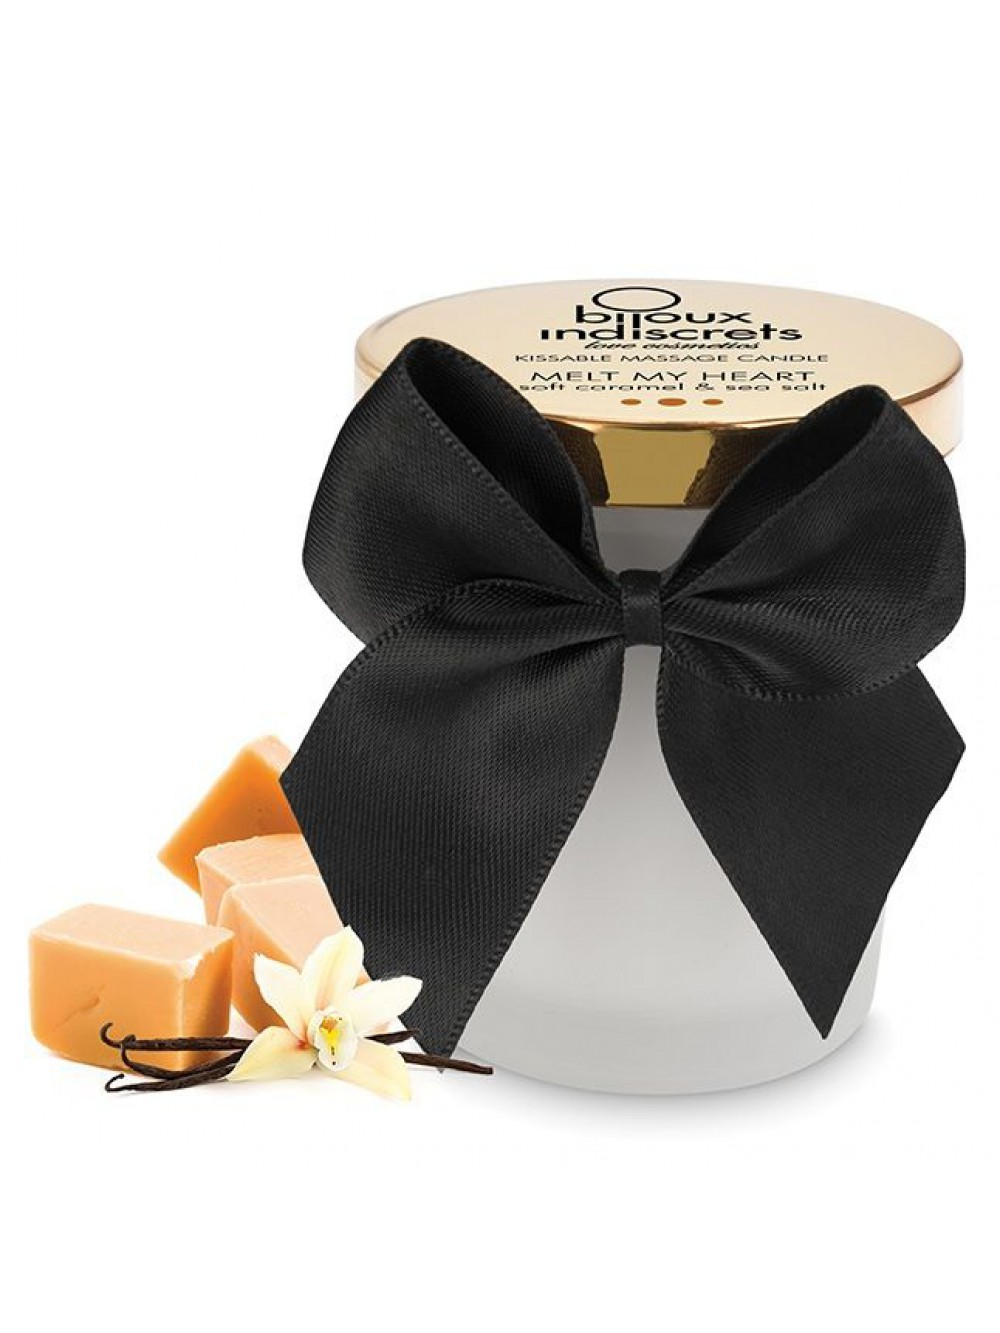 BIJOUX SOFT CARAMEL MASSAGE CANDLE 8436562010393